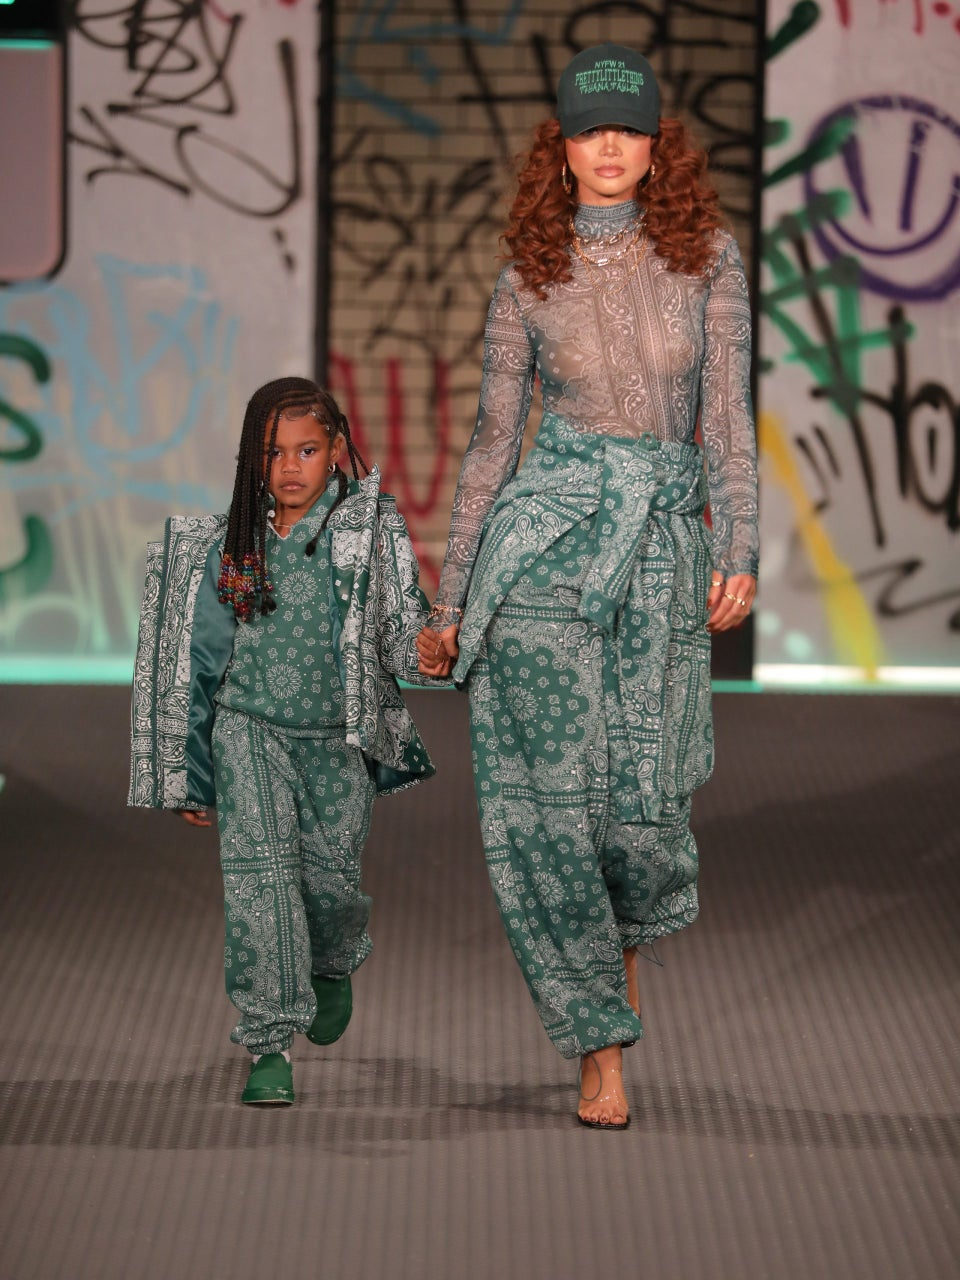 Teyana Taylor's Daughter Junie, 5, Made Her Runway Debut At Fashion Week And Stole The Show